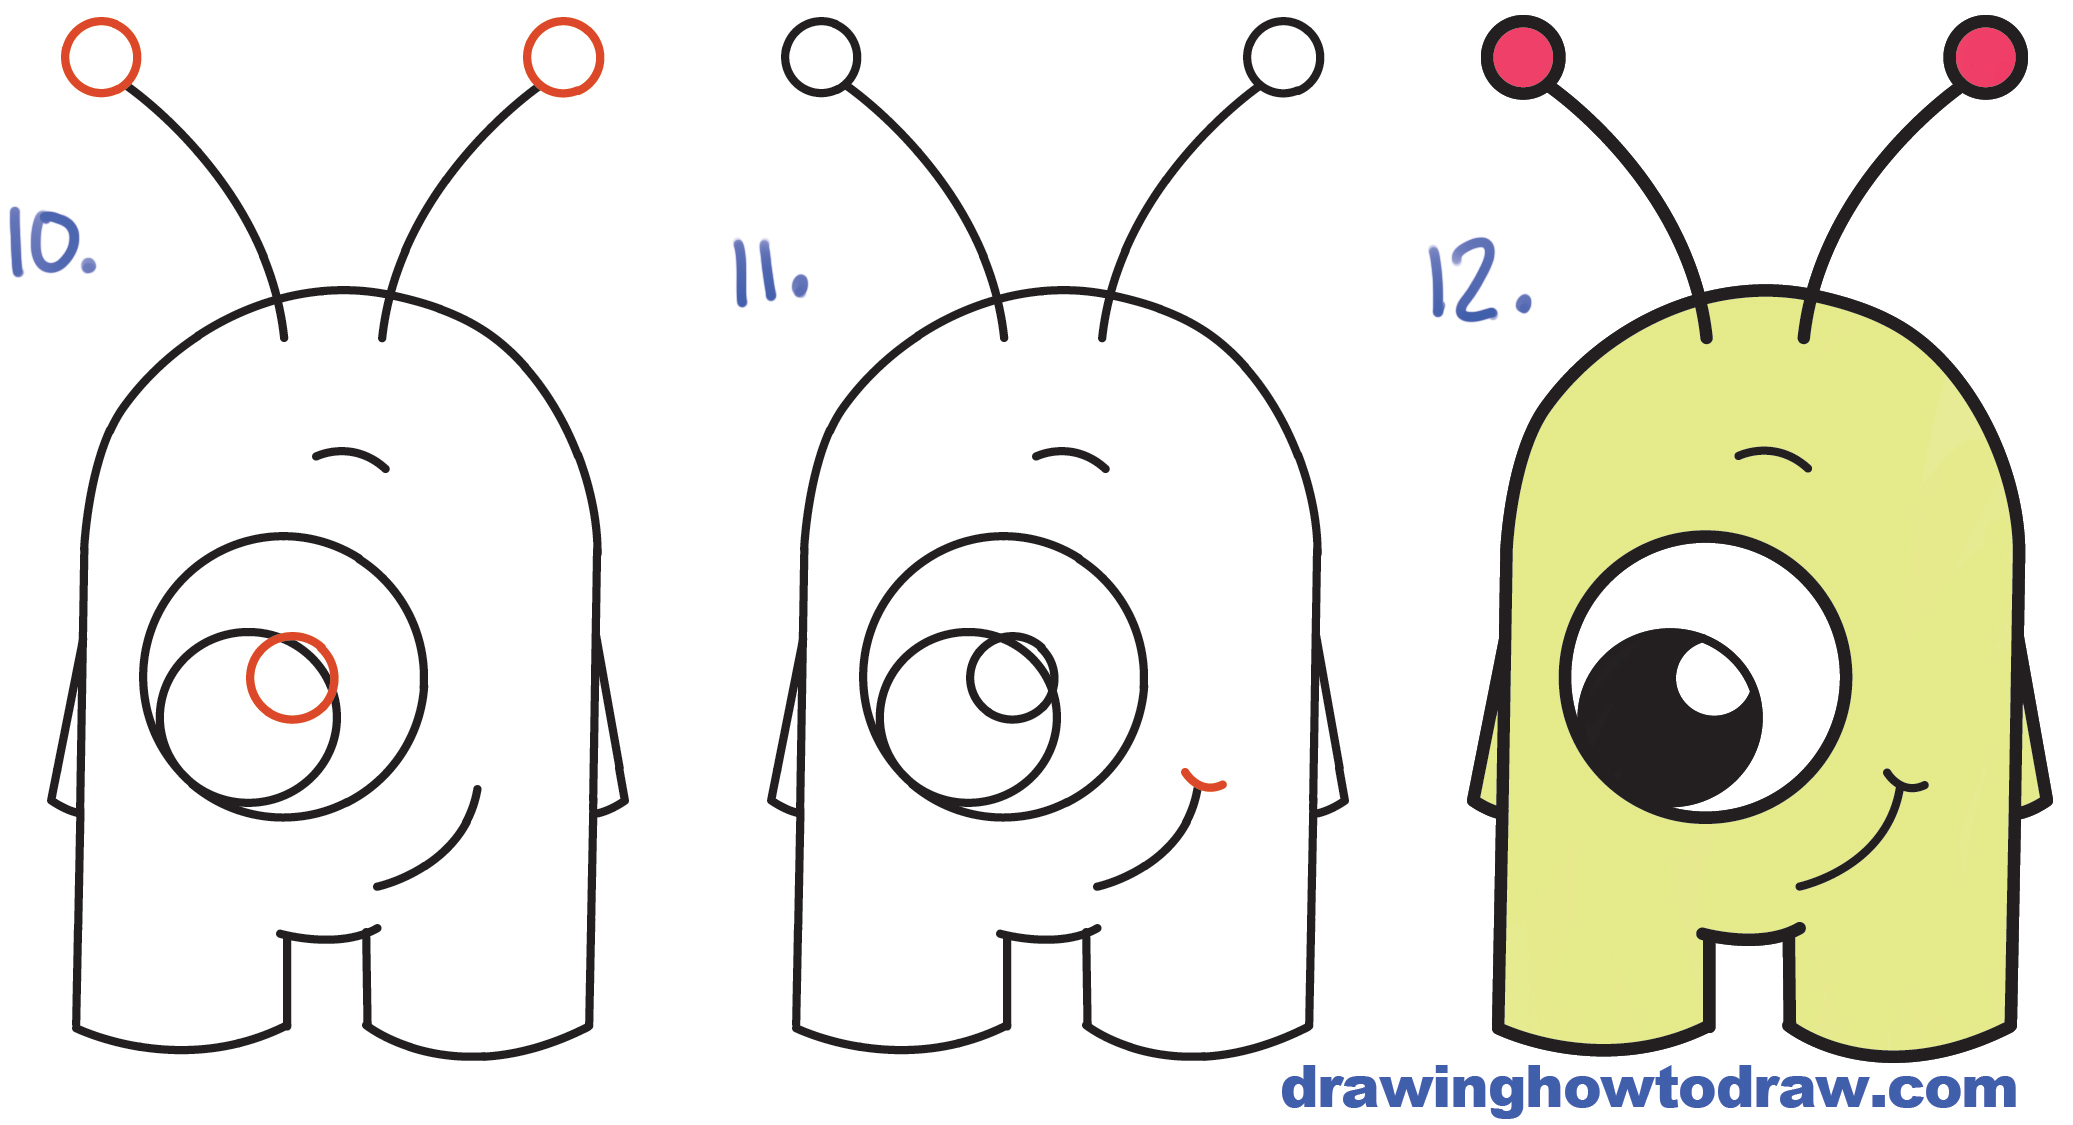 Easy to draw cute cartoons for Drawing ideas for beginners step by step